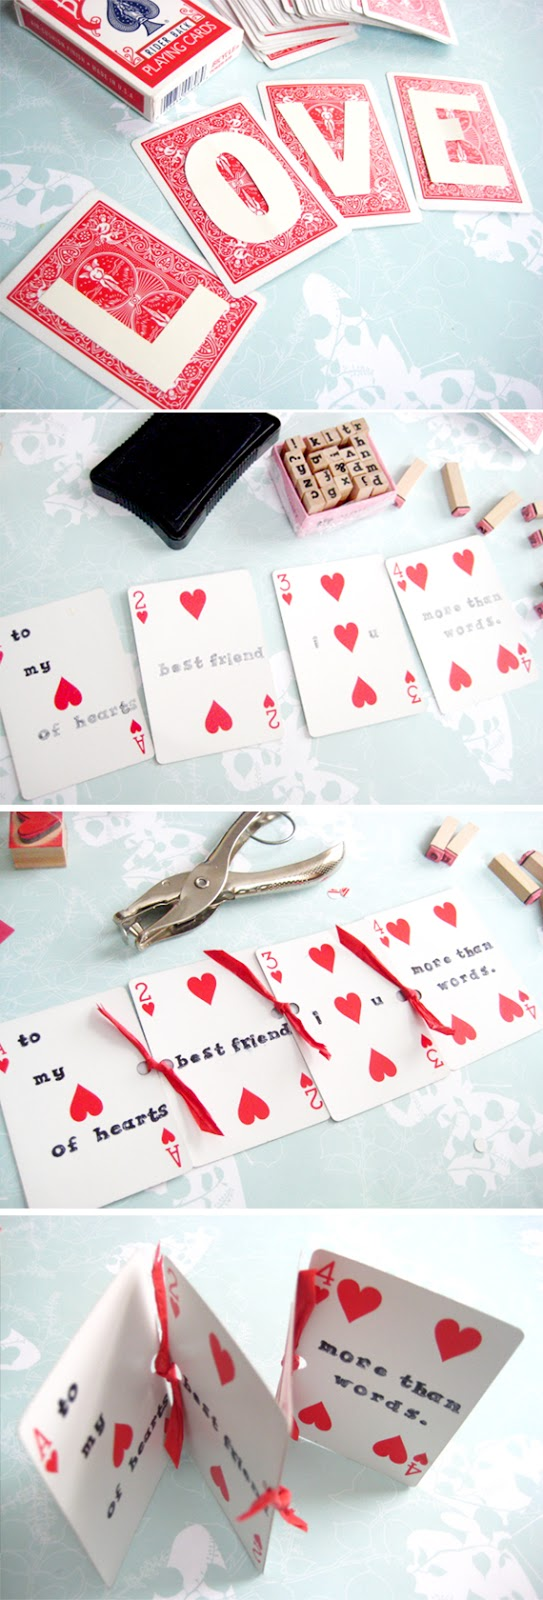 Homemade poker cards : Poker petes kalama menu